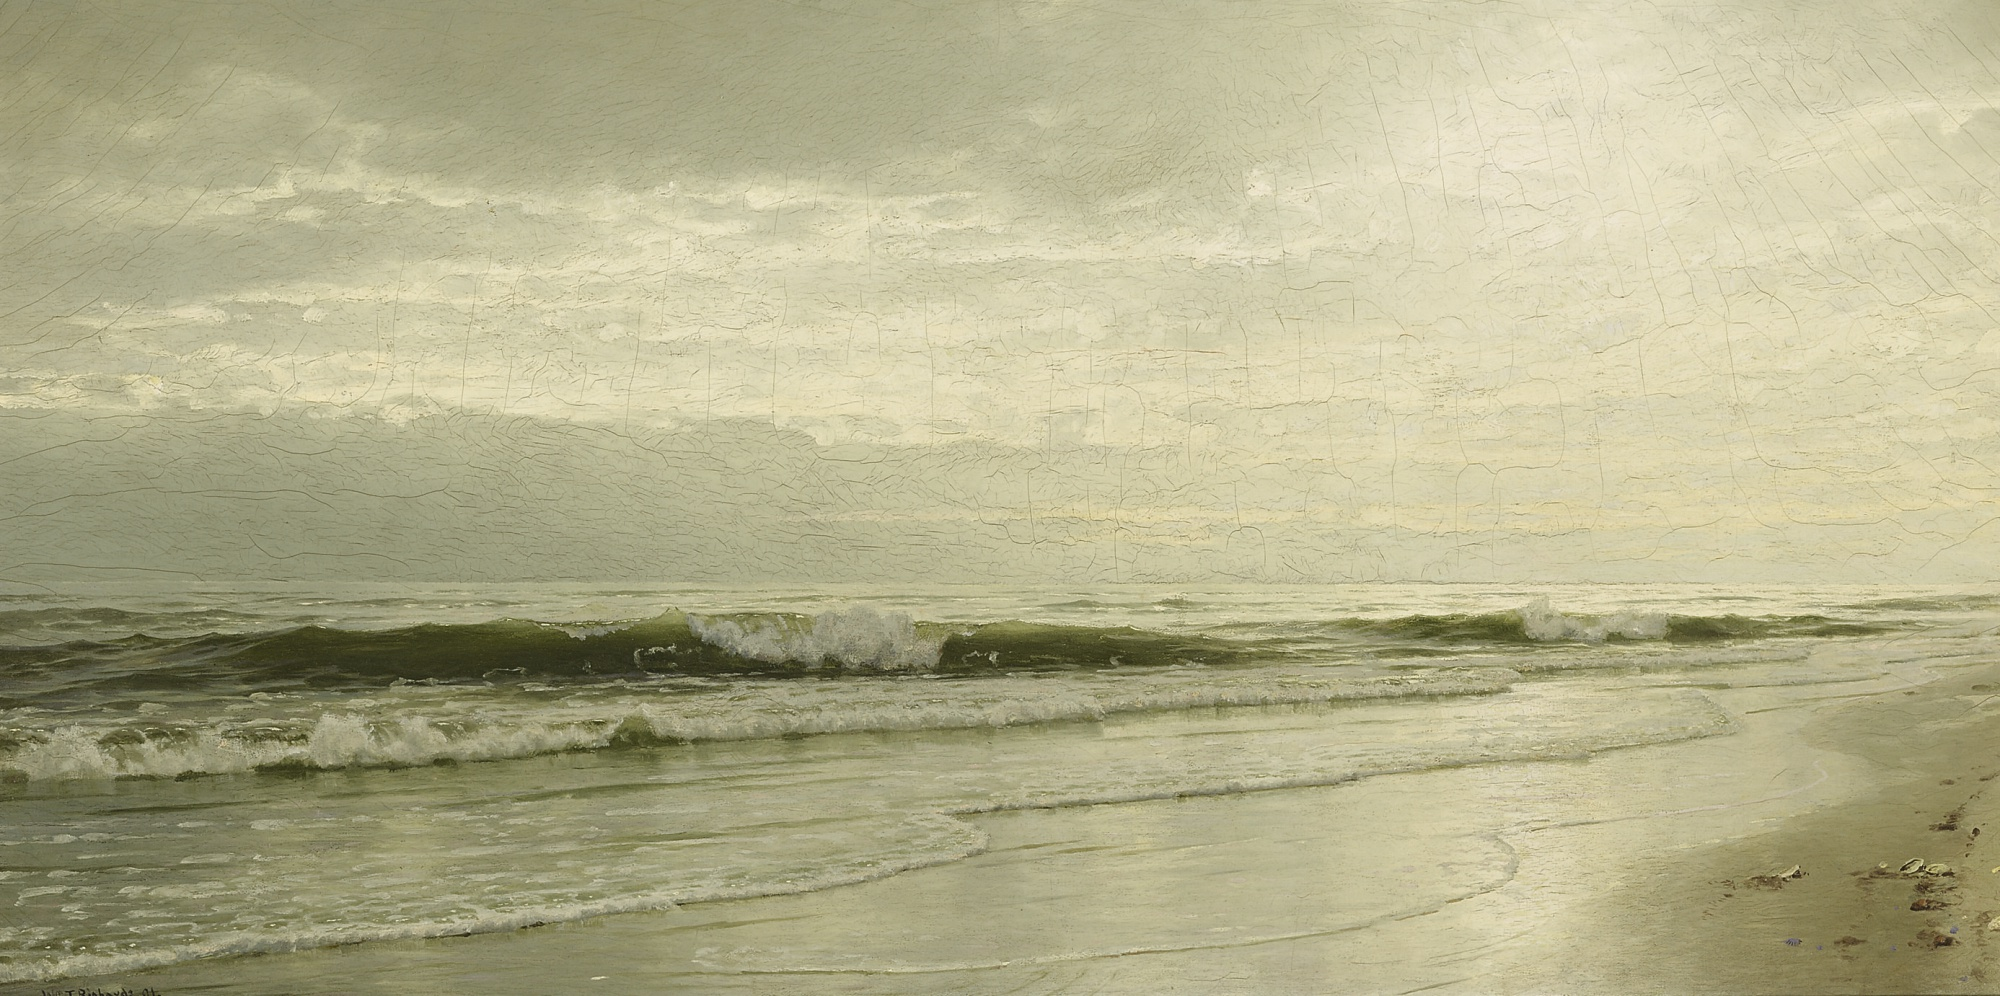 Ebbing Tide, by William Trost Richards, 1891